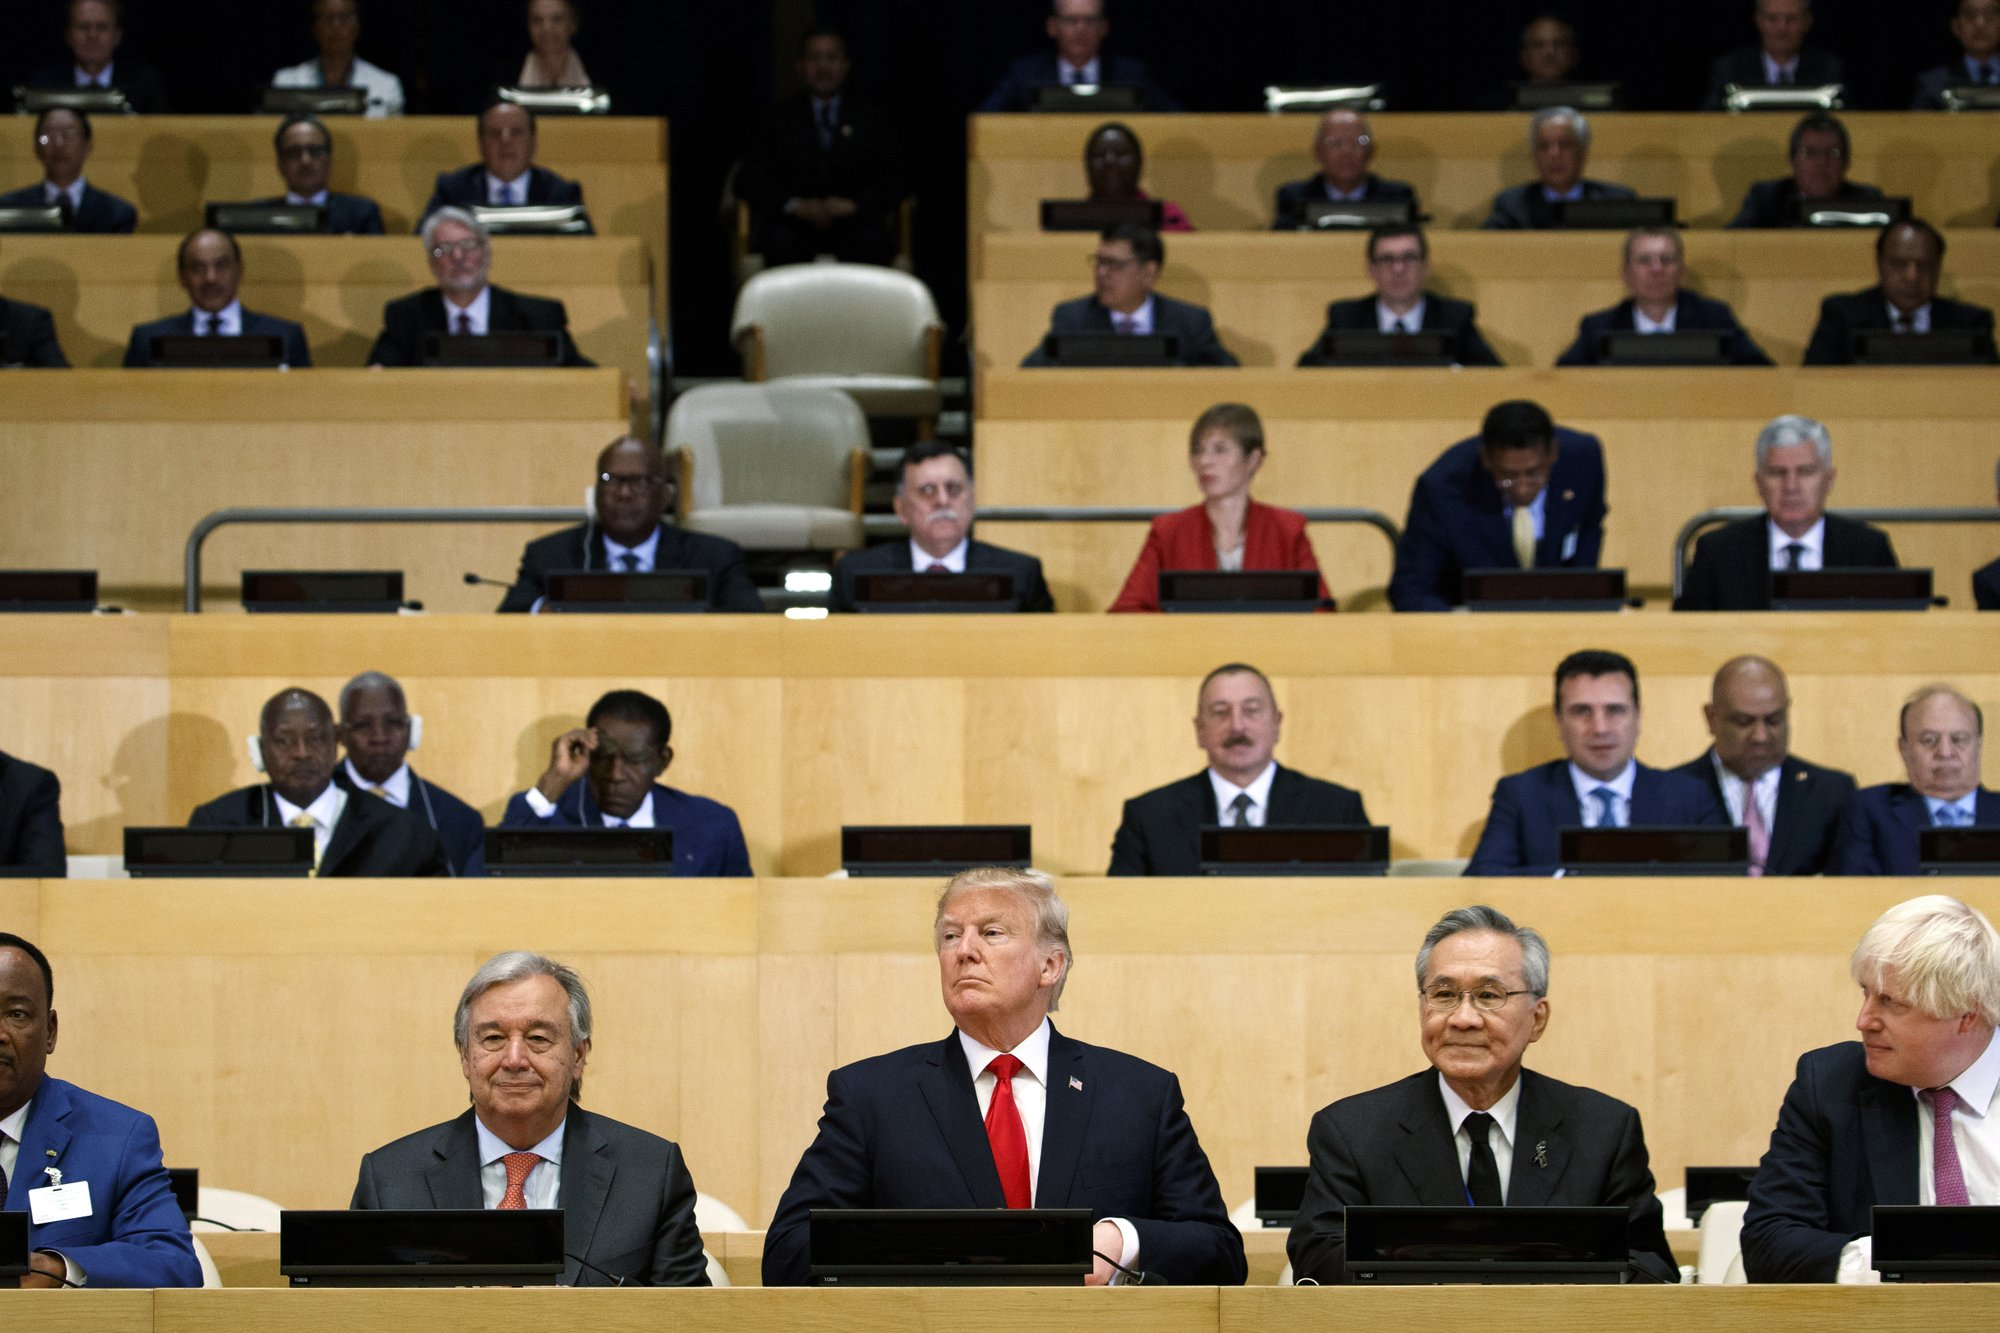 Trump calls for UN reform, but with more restrained tones